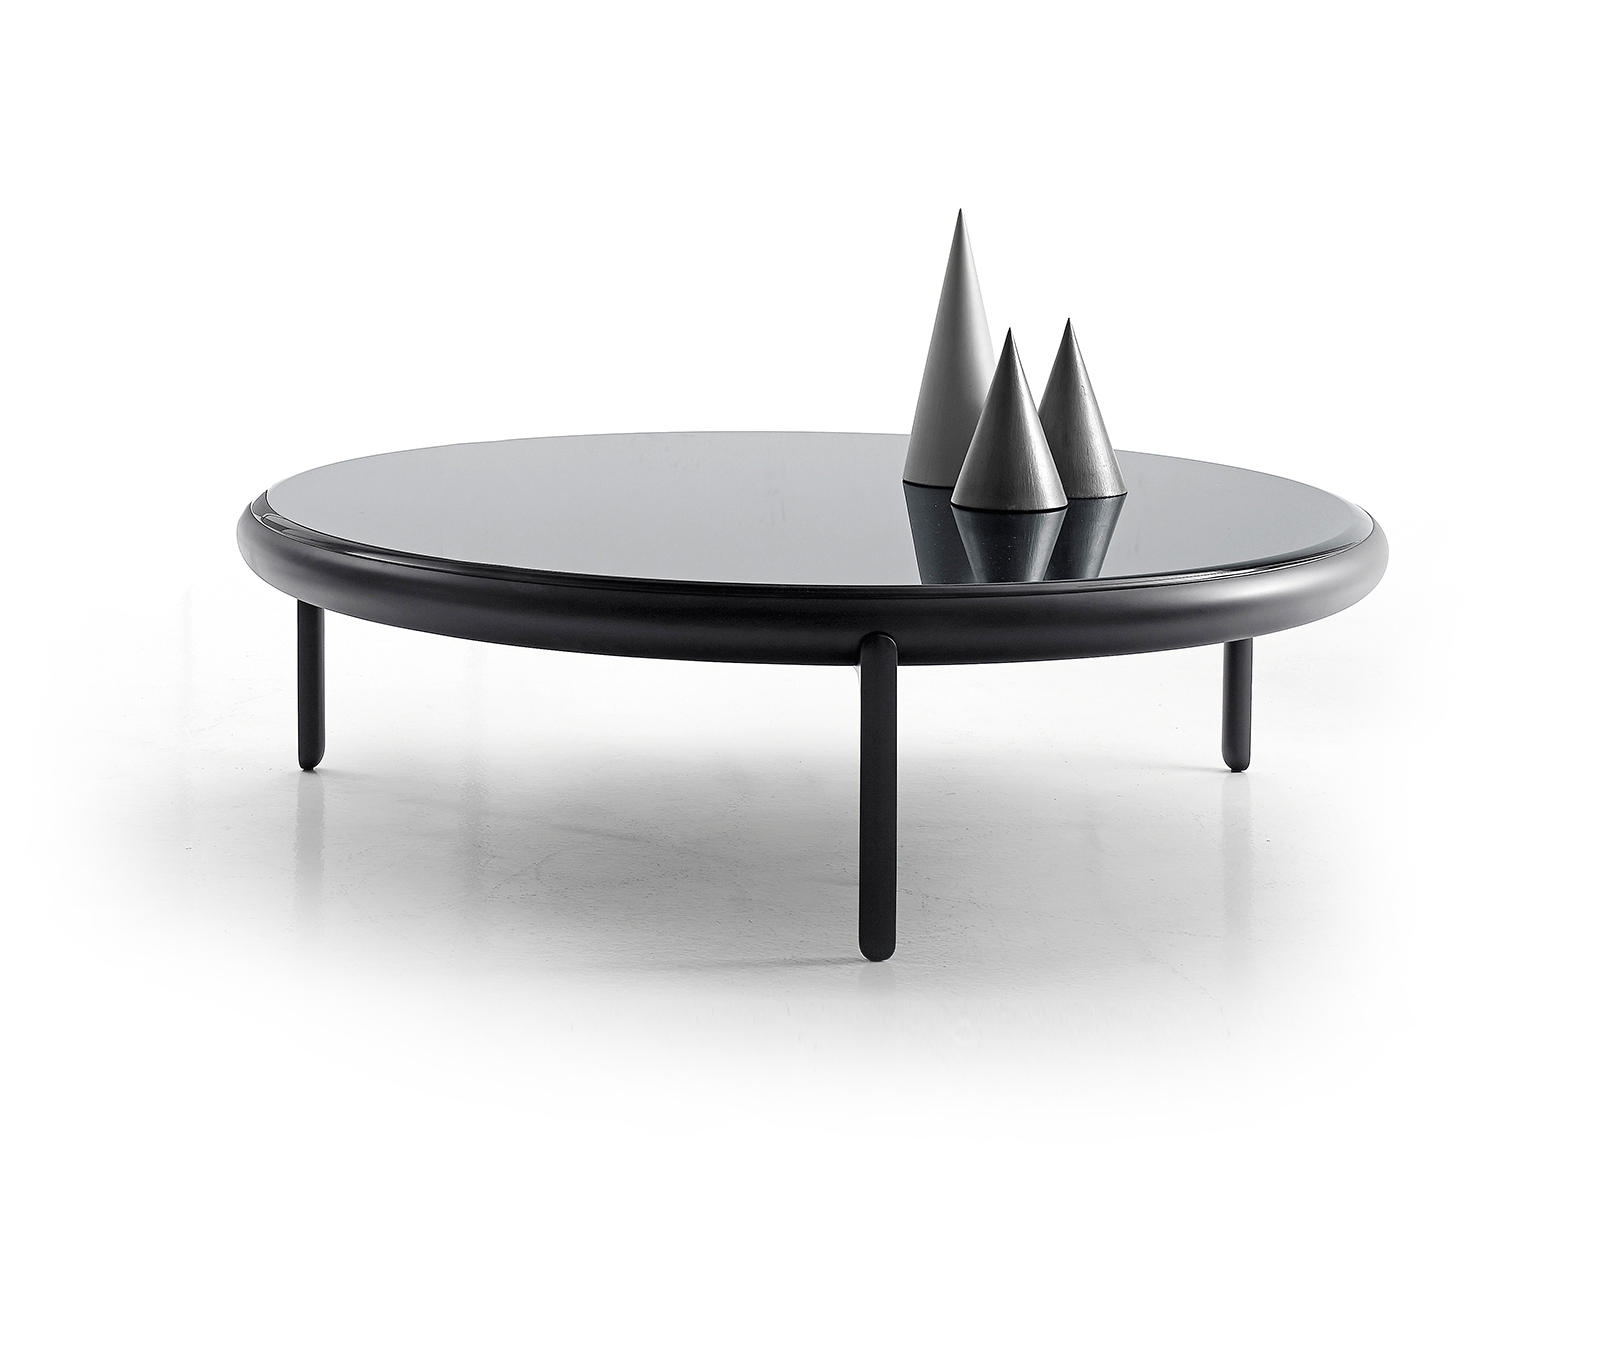 MARU Lounge tables from B&B Italia